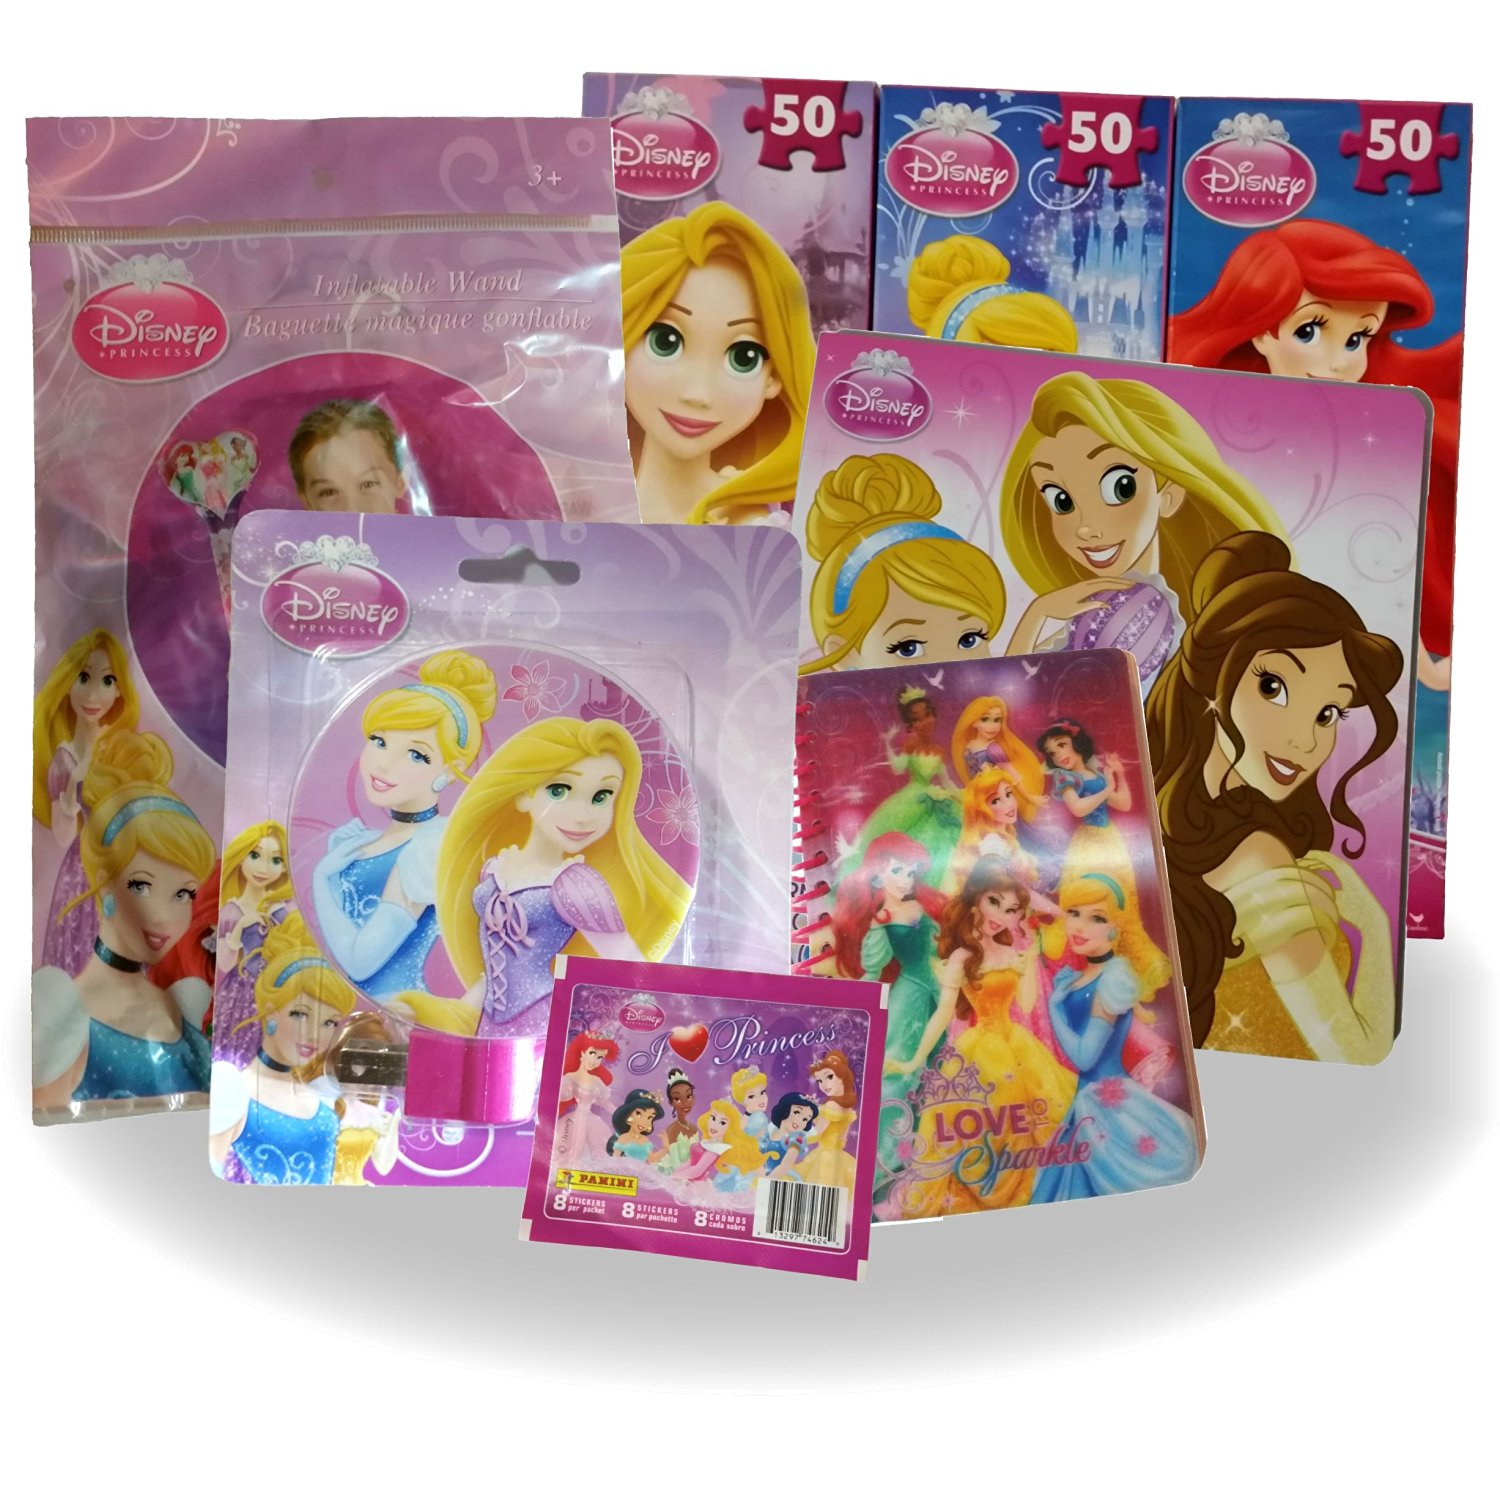 Disney Princess 8 Piece Bundle Set - Includes Three 50-Piece Tower Puzzles, Princess Board Picture Book, Inflatable Magic Wand, Night Light, 3D Holographic Journal and Bonus Album Stickers Pack